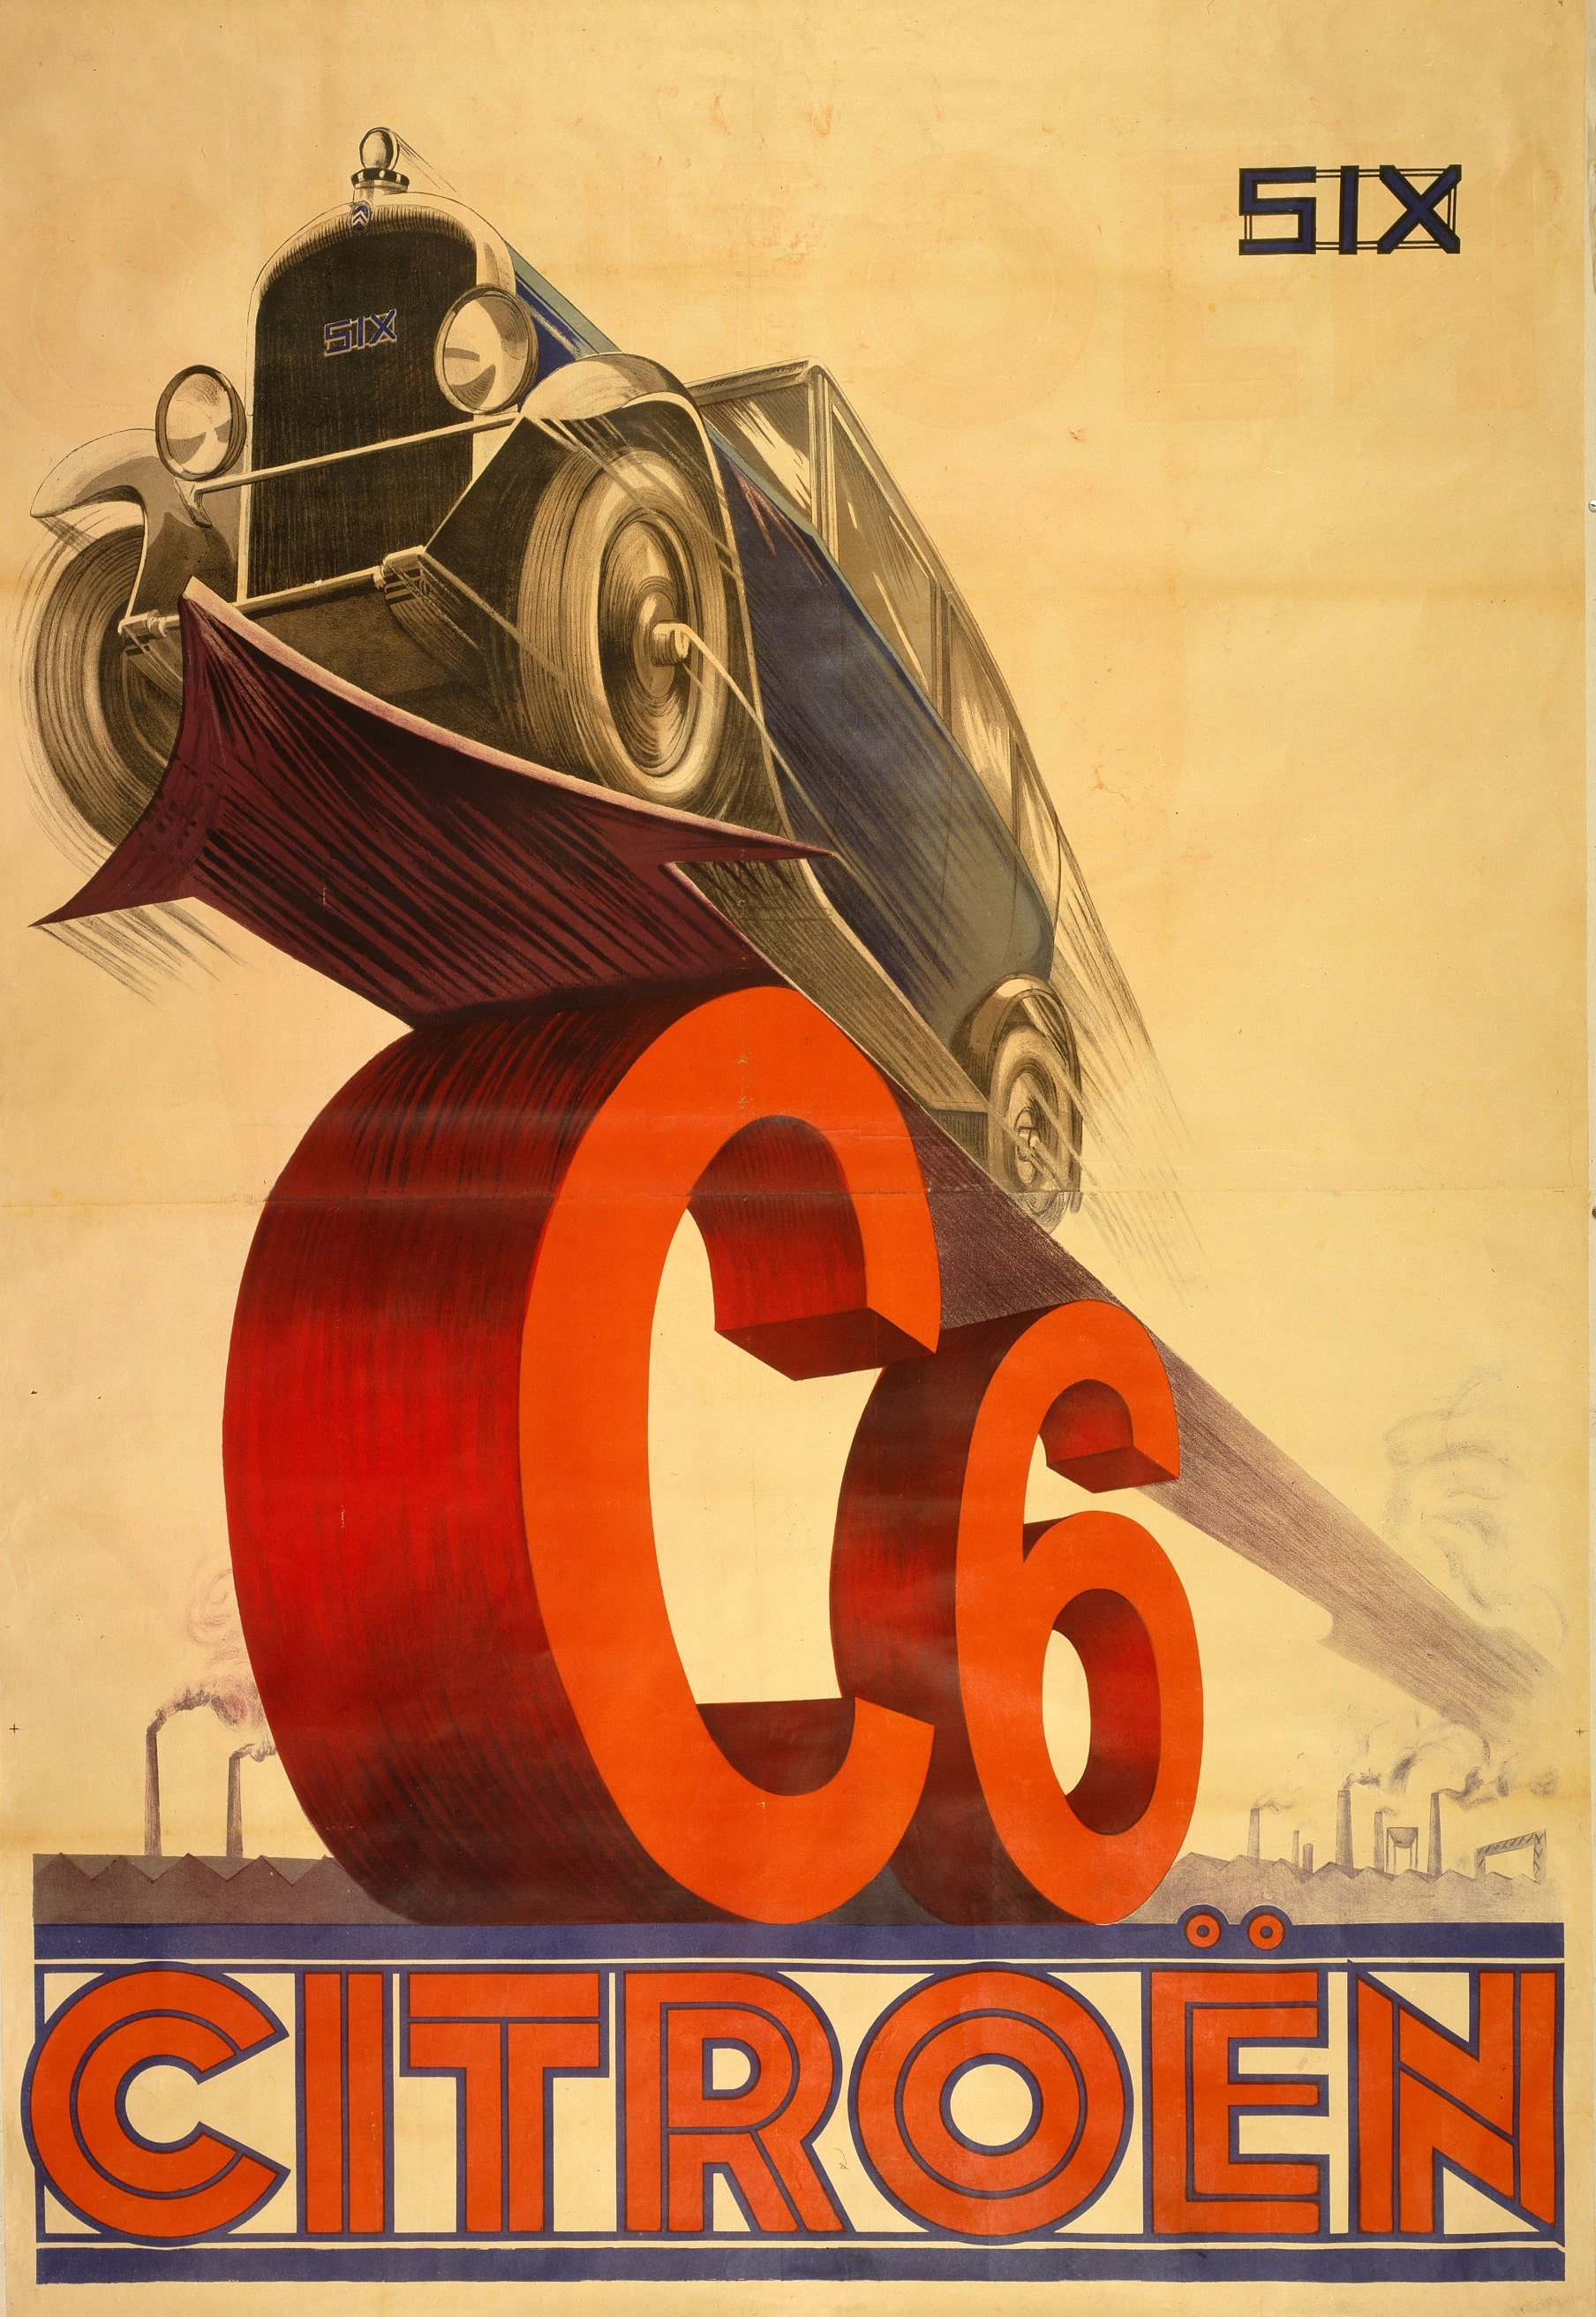 Vintage Citroen C6 advert